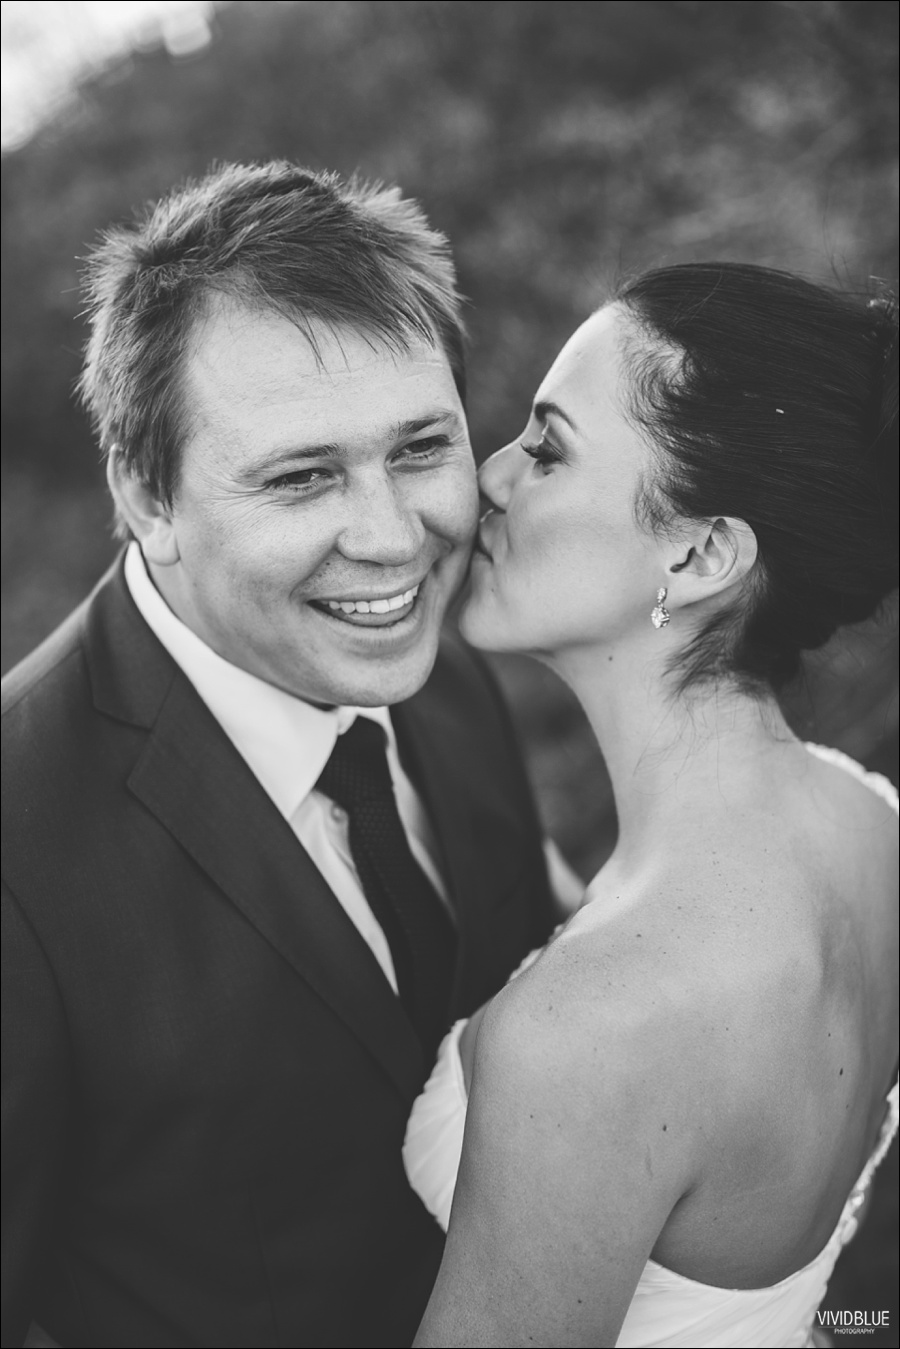 VividBlue-louis-christa-wedding-upington-065